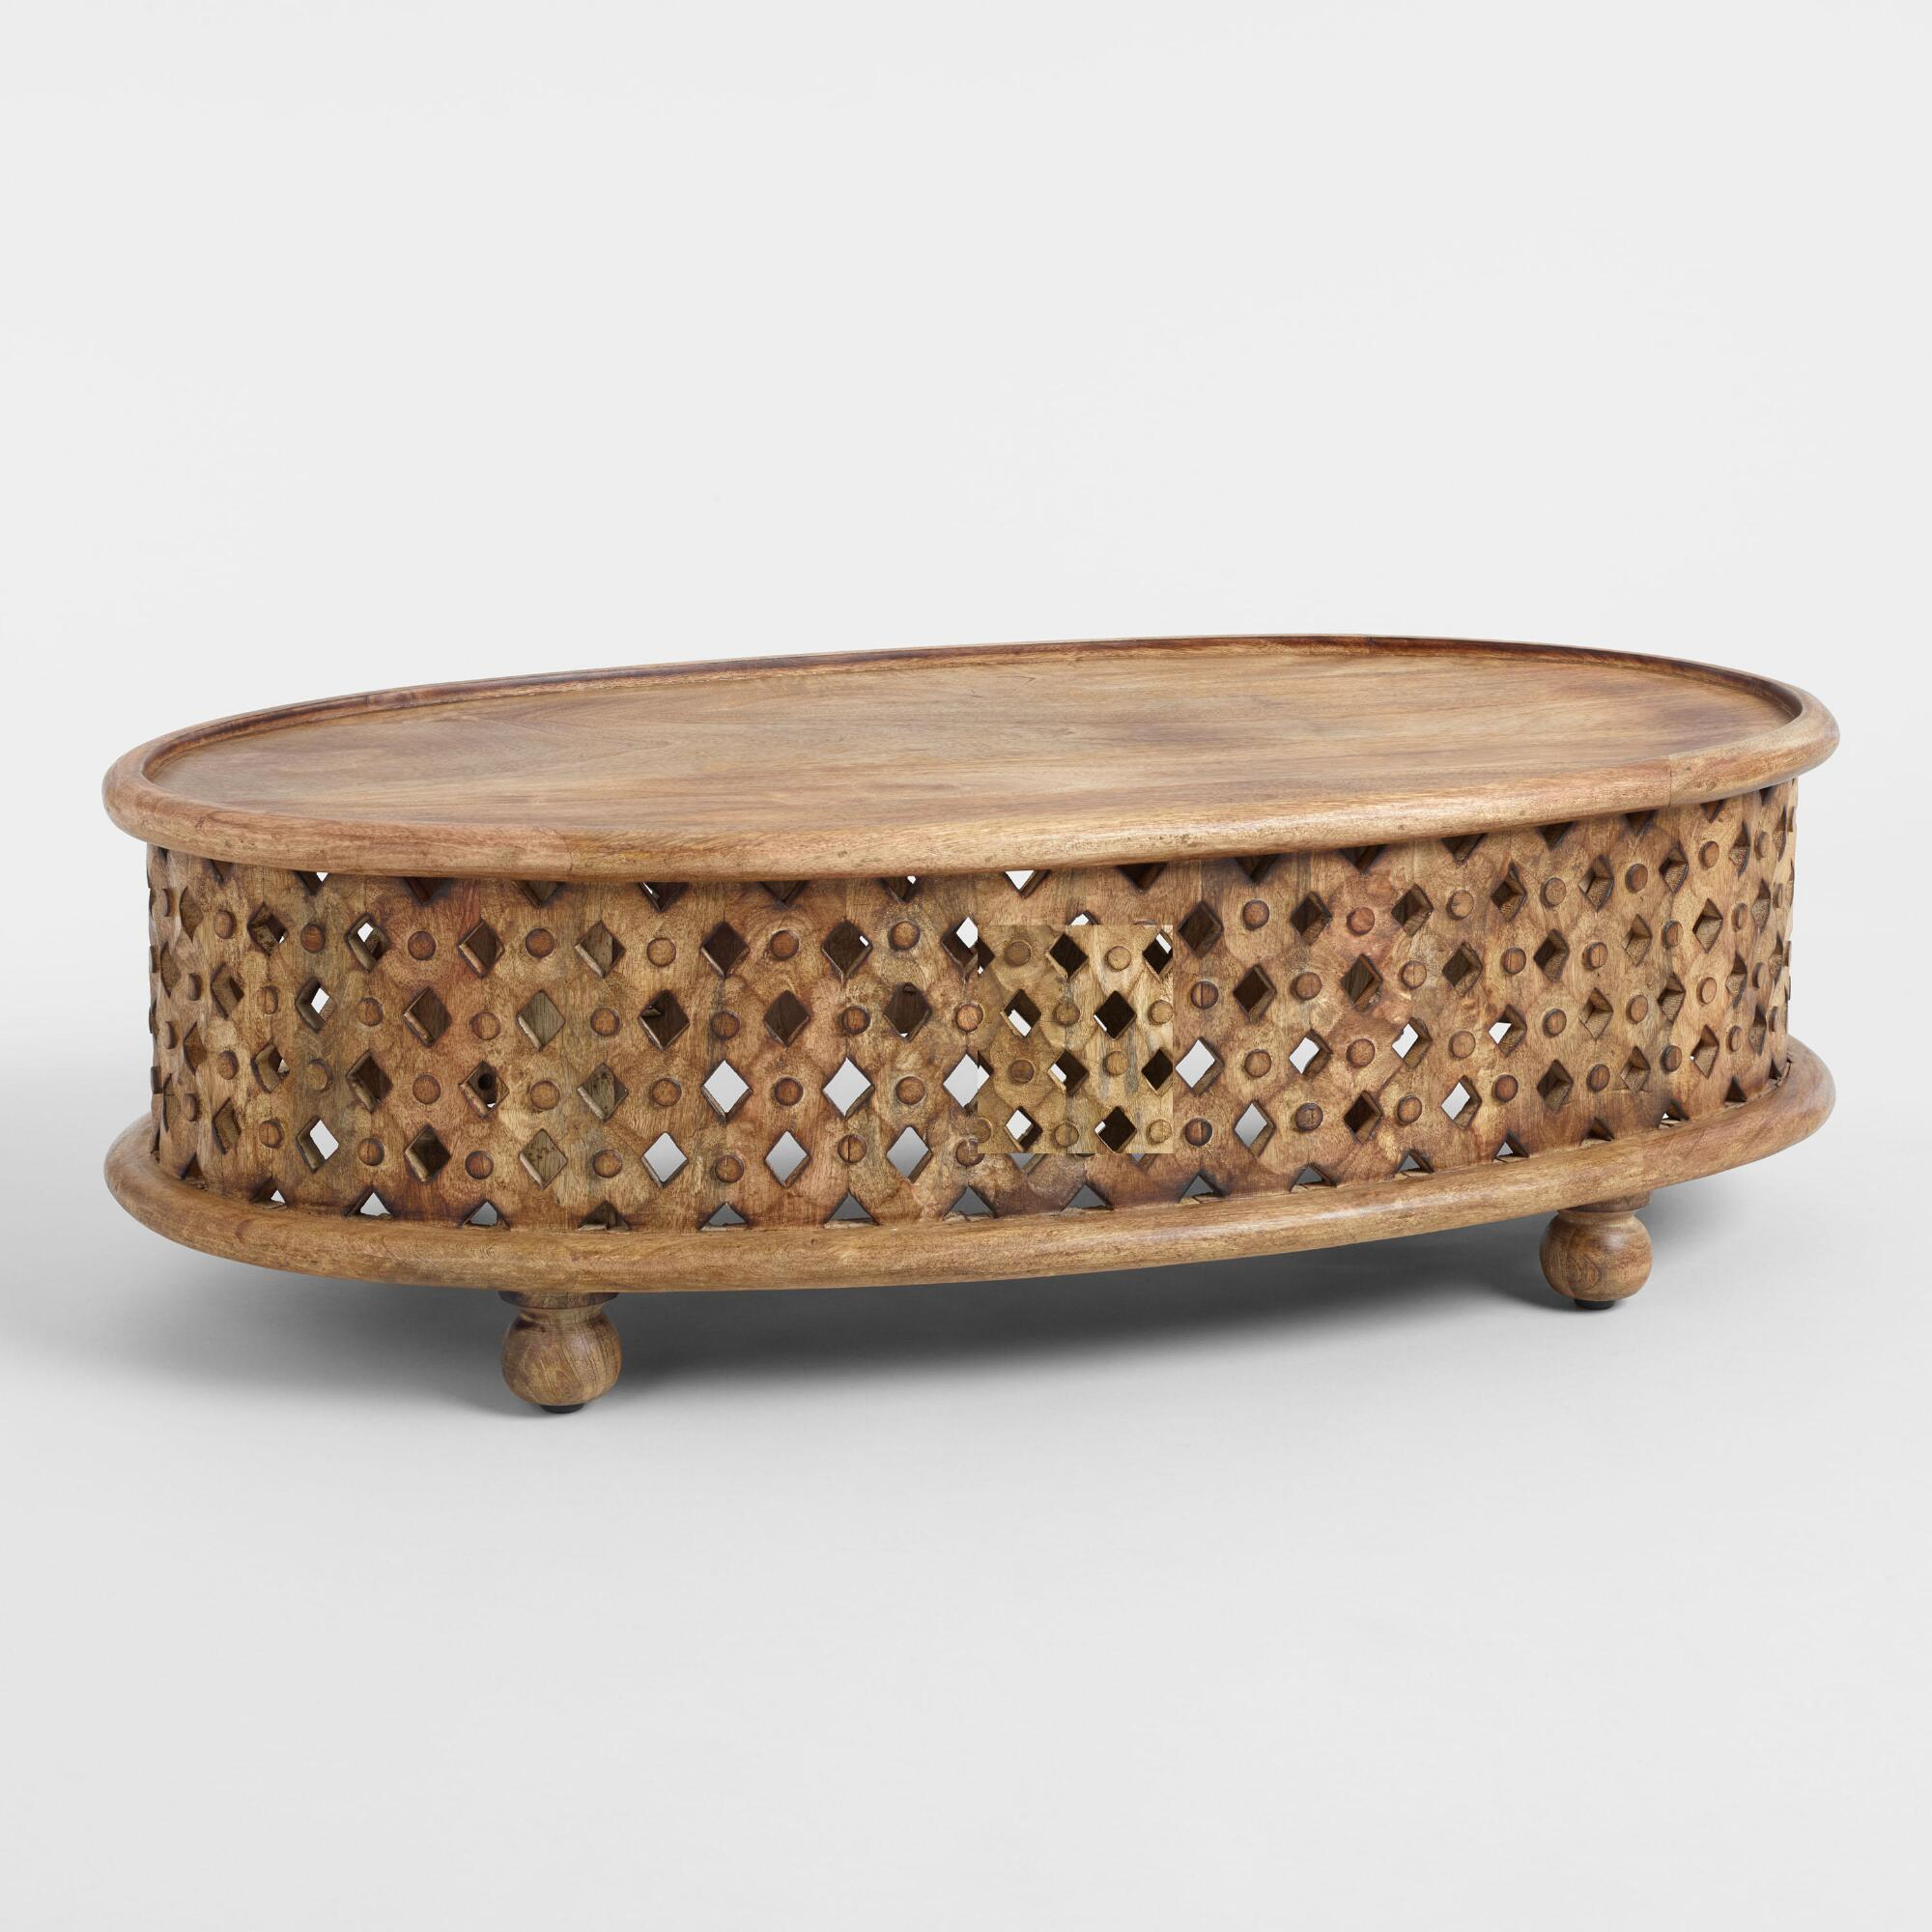 Oval Tribal Carved Wood Coffee Table: Brown by World Market